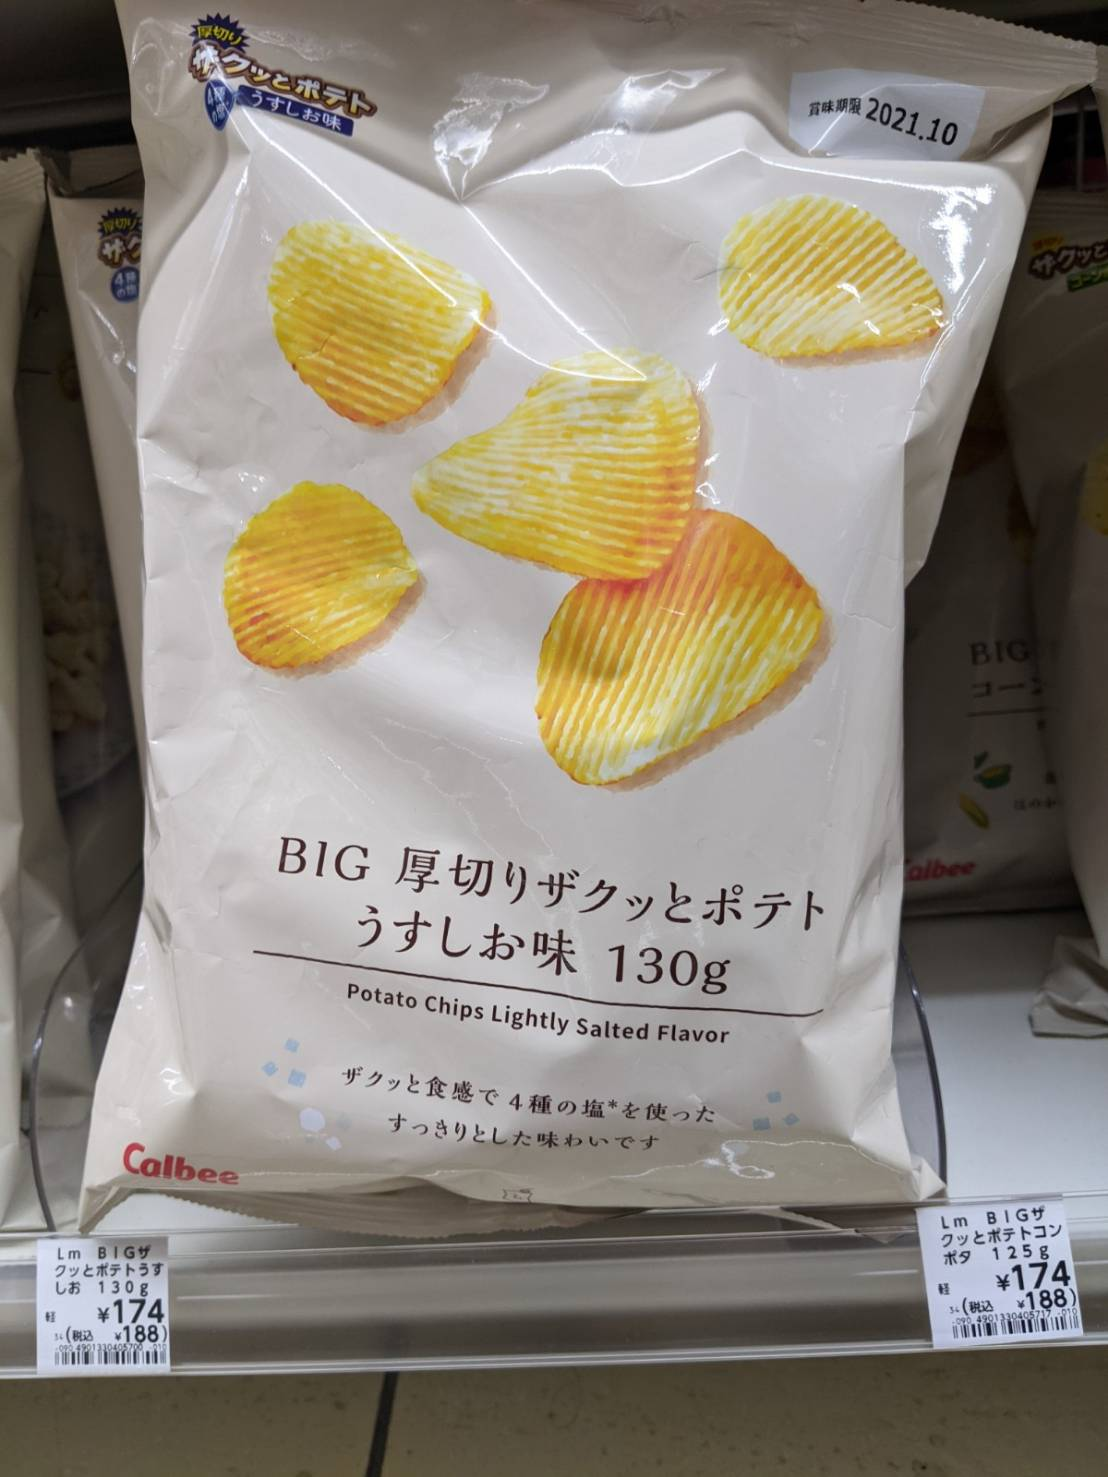 Lawson Calbee Potato Chips Lightly Salted Flavor